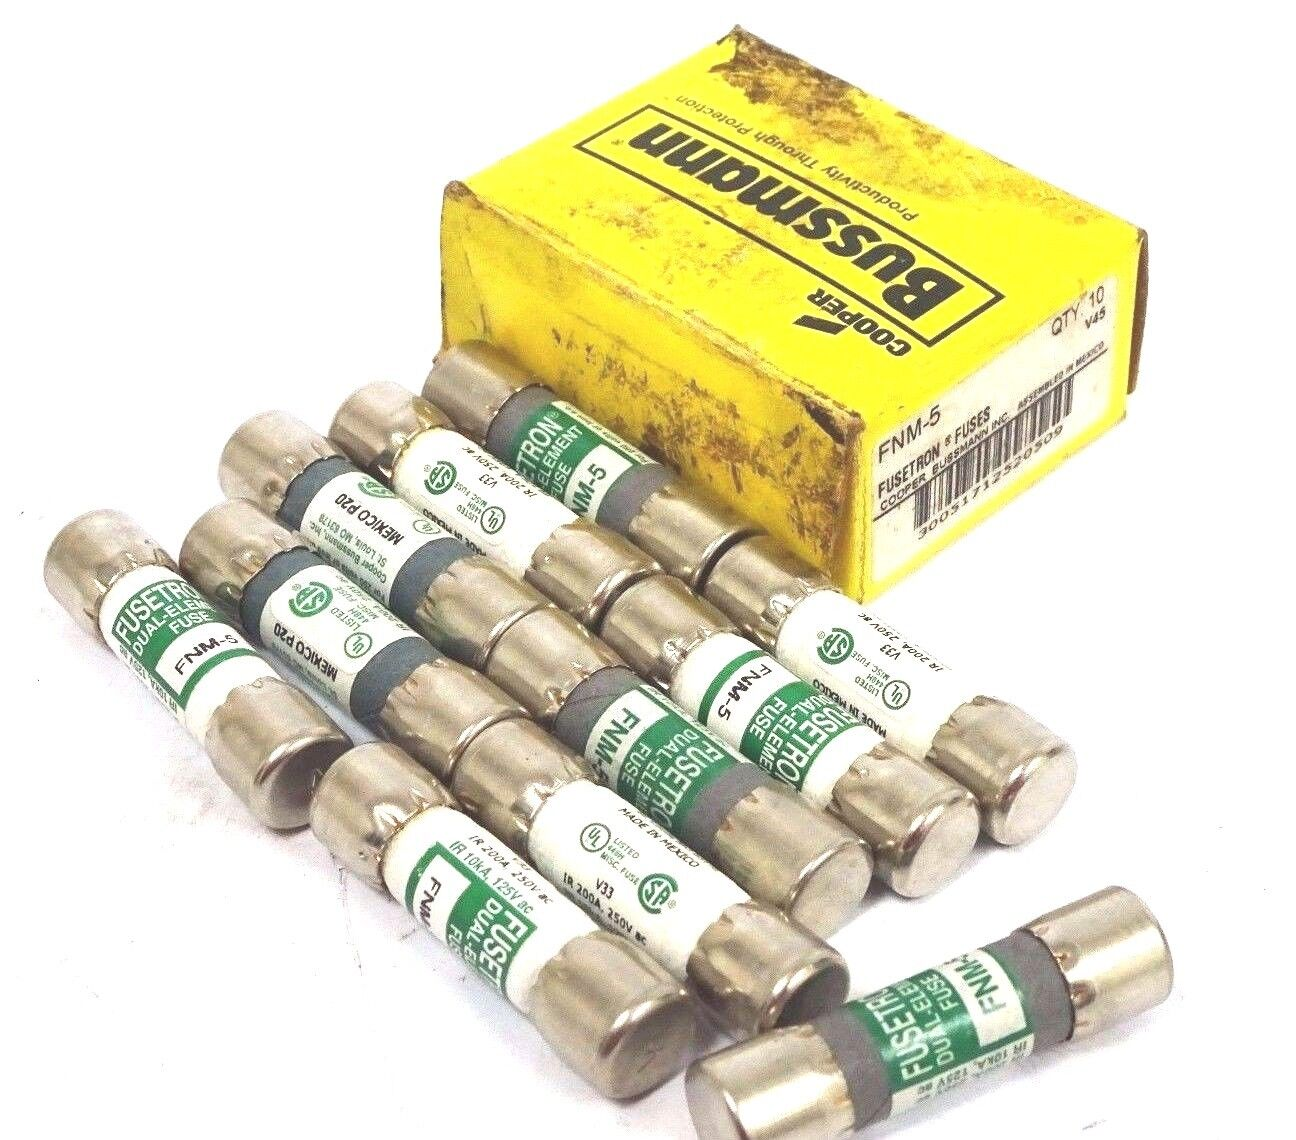 LOT OF 21 NEW COOPER BUSSMANN FNM-5 FUSES